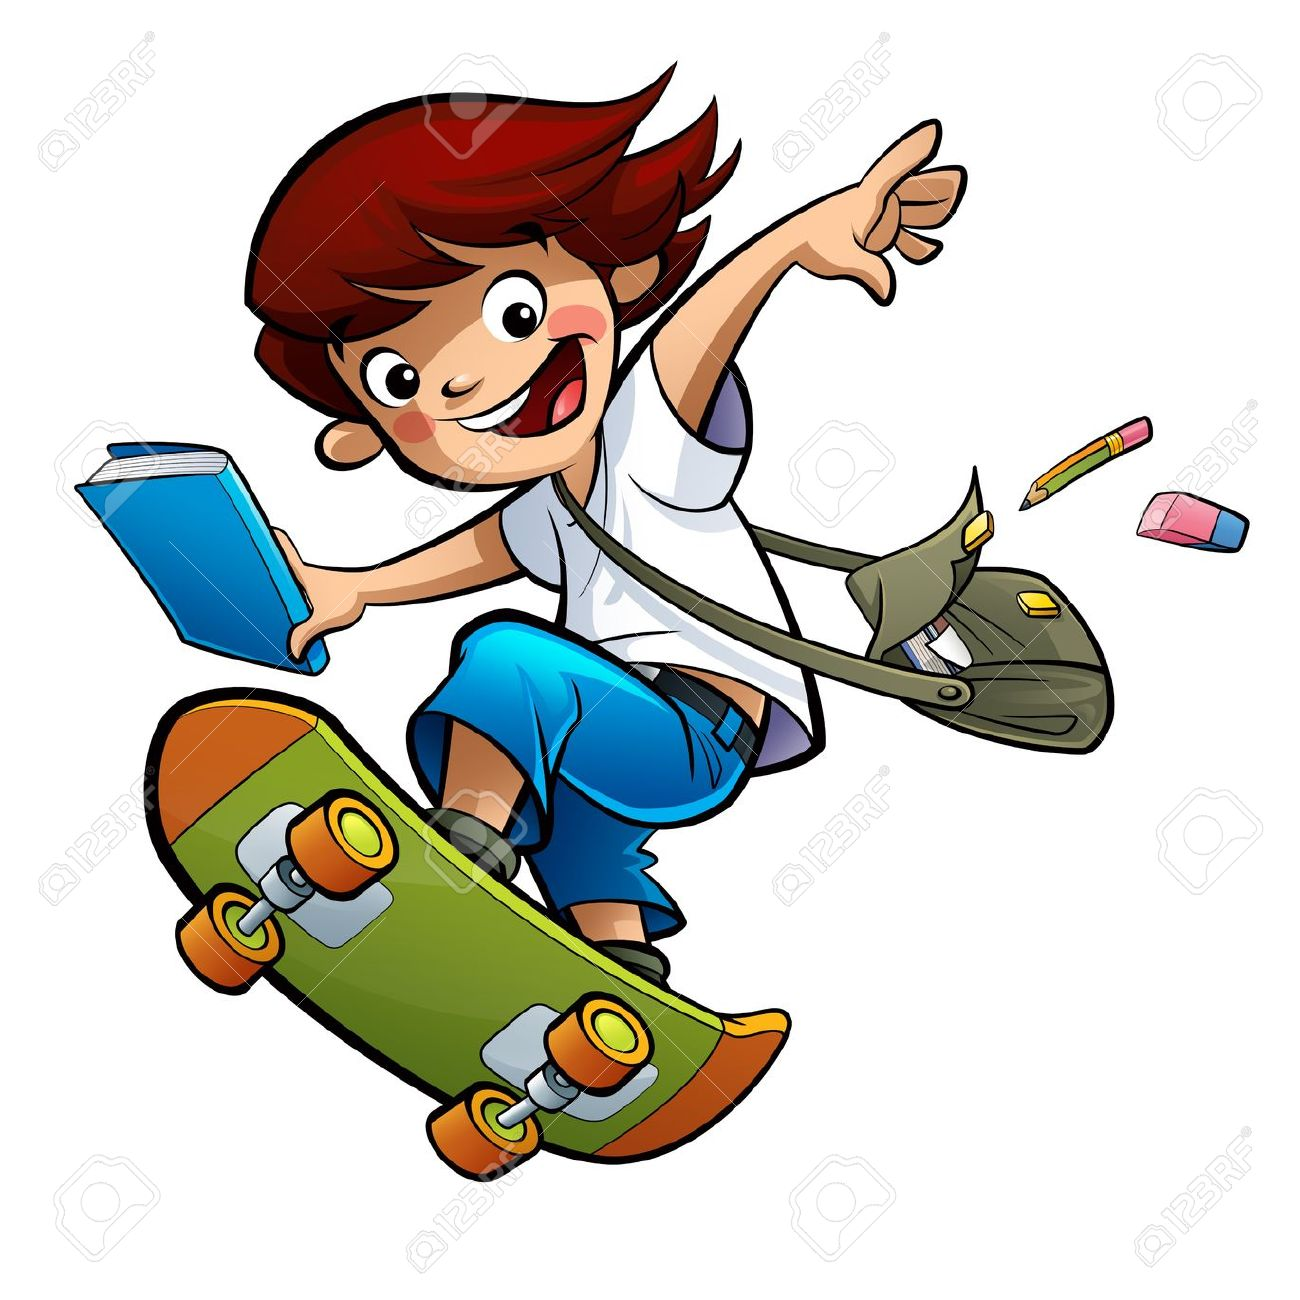 Excited happy smiling pupil boy going to school skating fast jumping high Stock Photo - 21976645